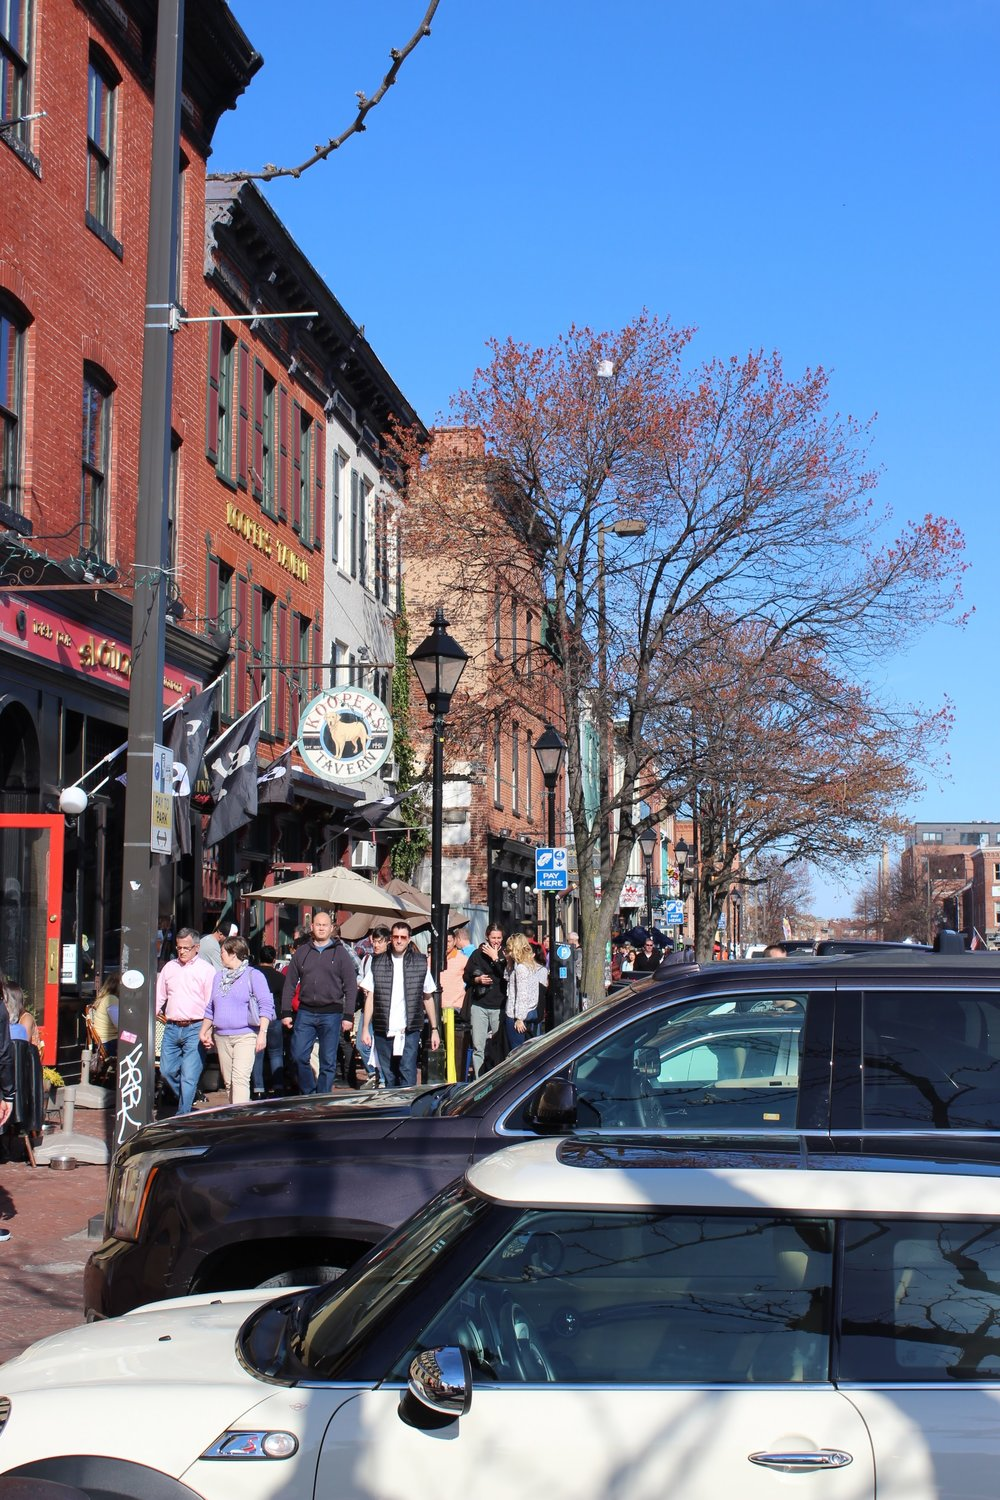 Sunday brunch scene in Fells Point